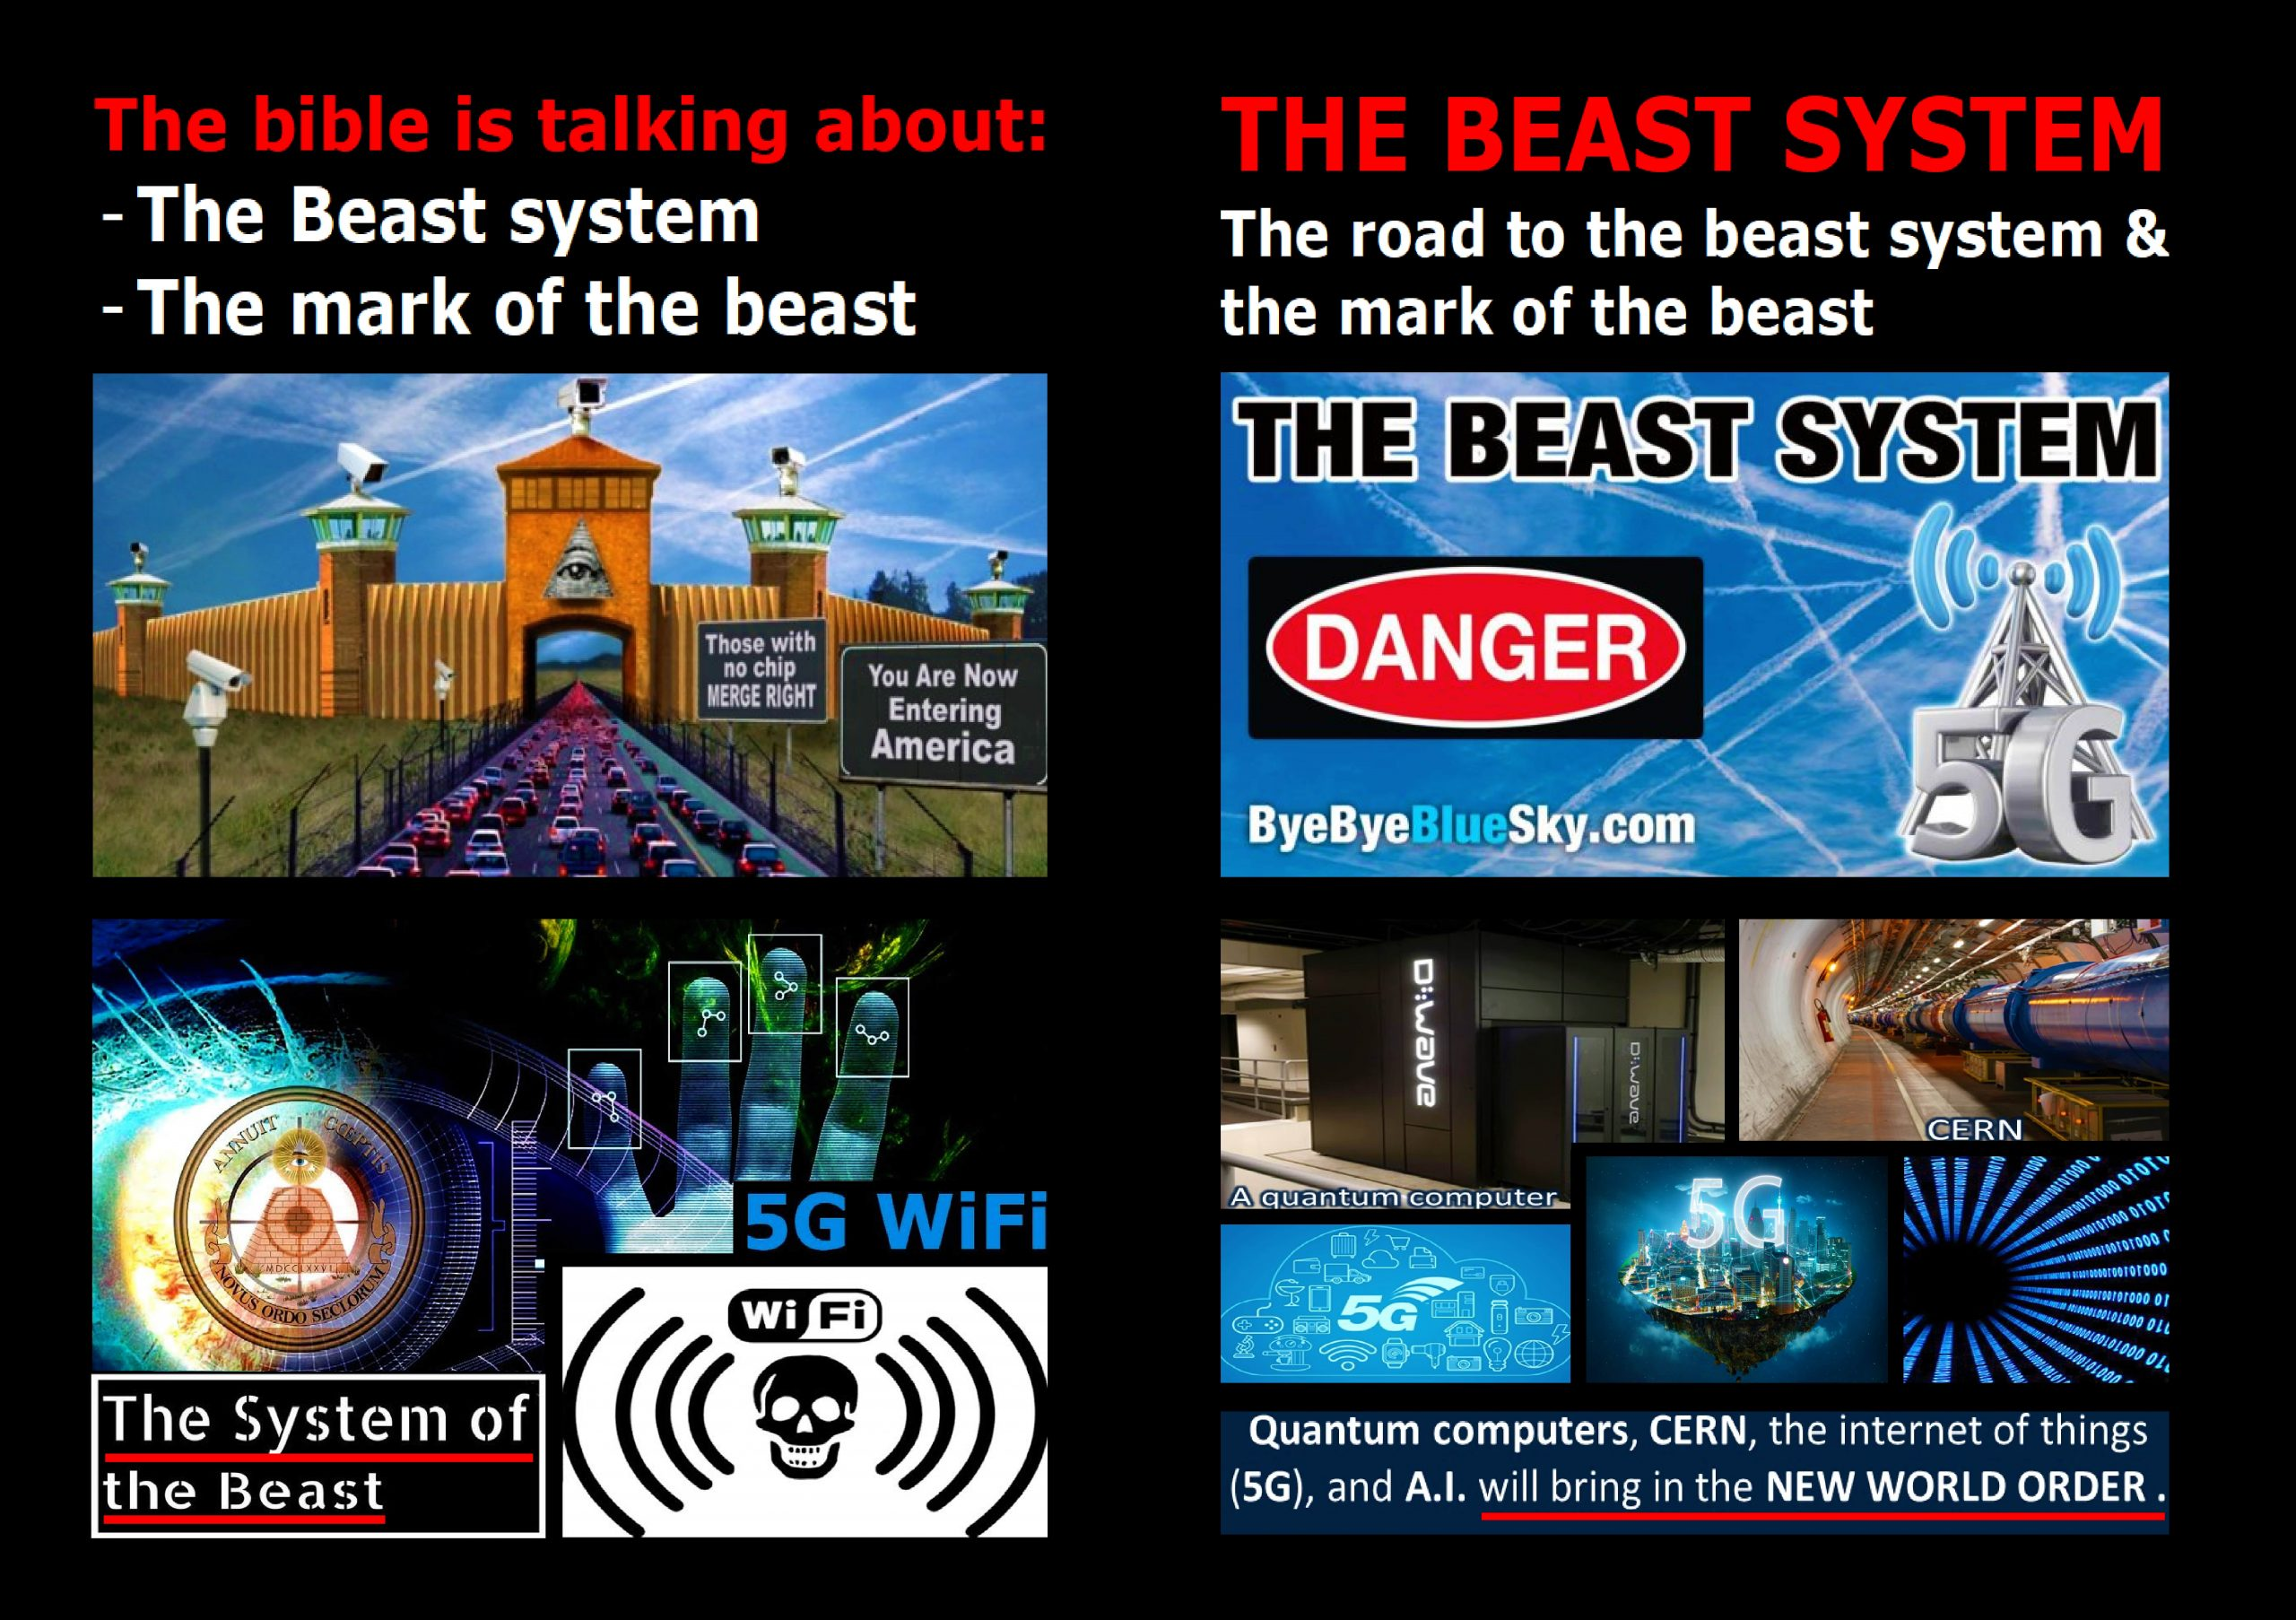 The Beast System